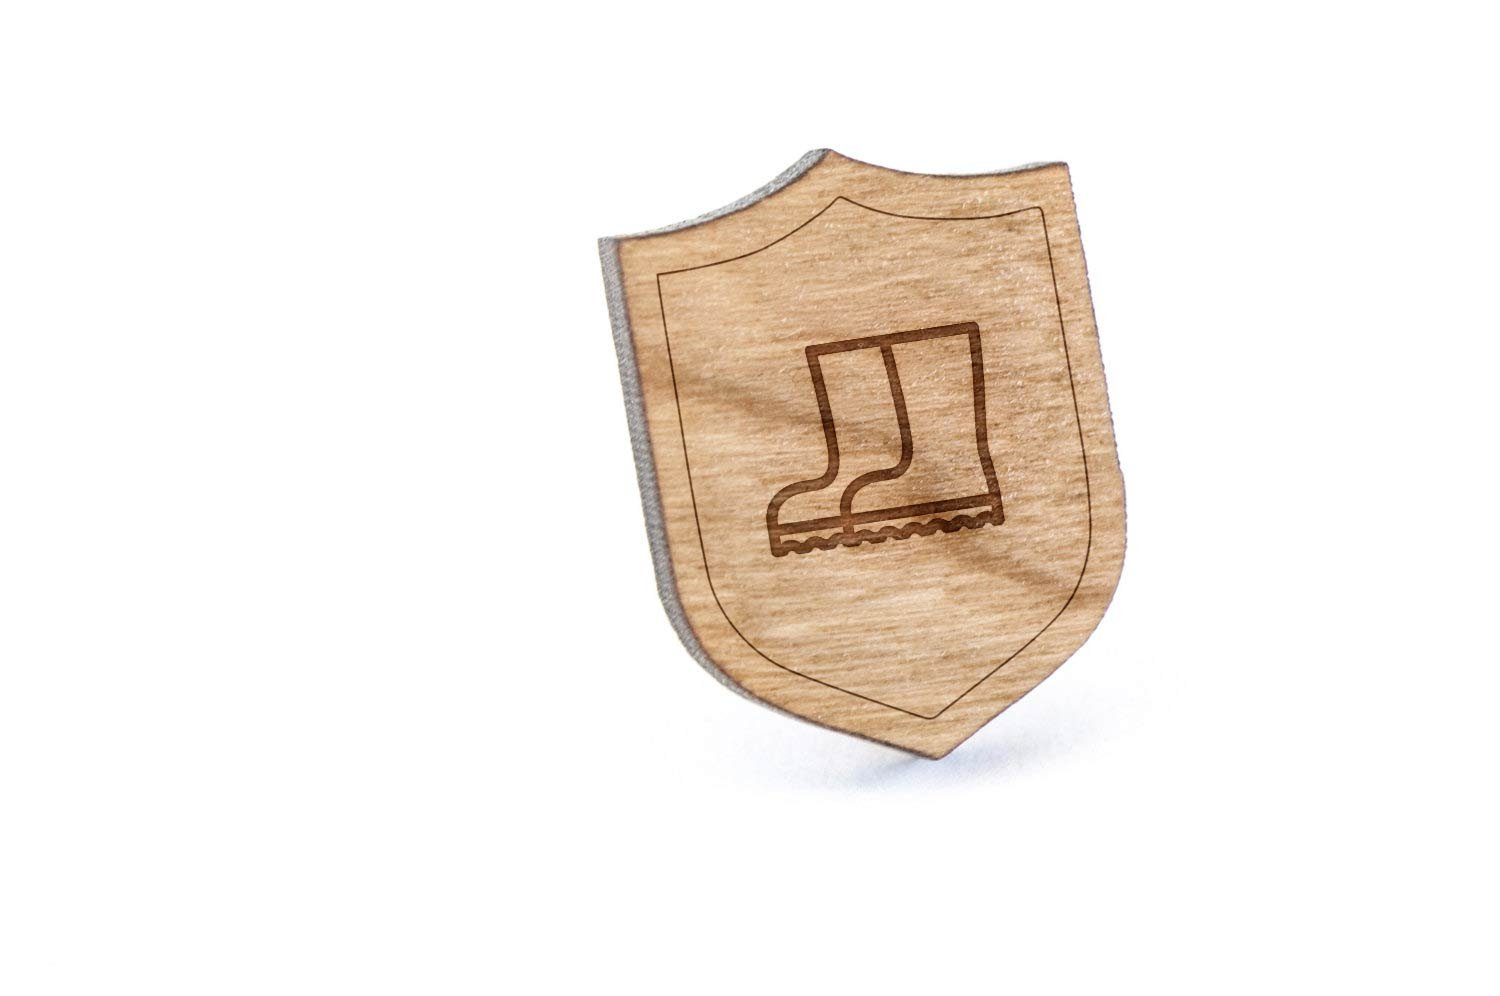 Boots Lapel Pin, Wooden Pin And Tie Tack   Rustic And Minimalistic Groomsmen Gifts And Wedding Accessories